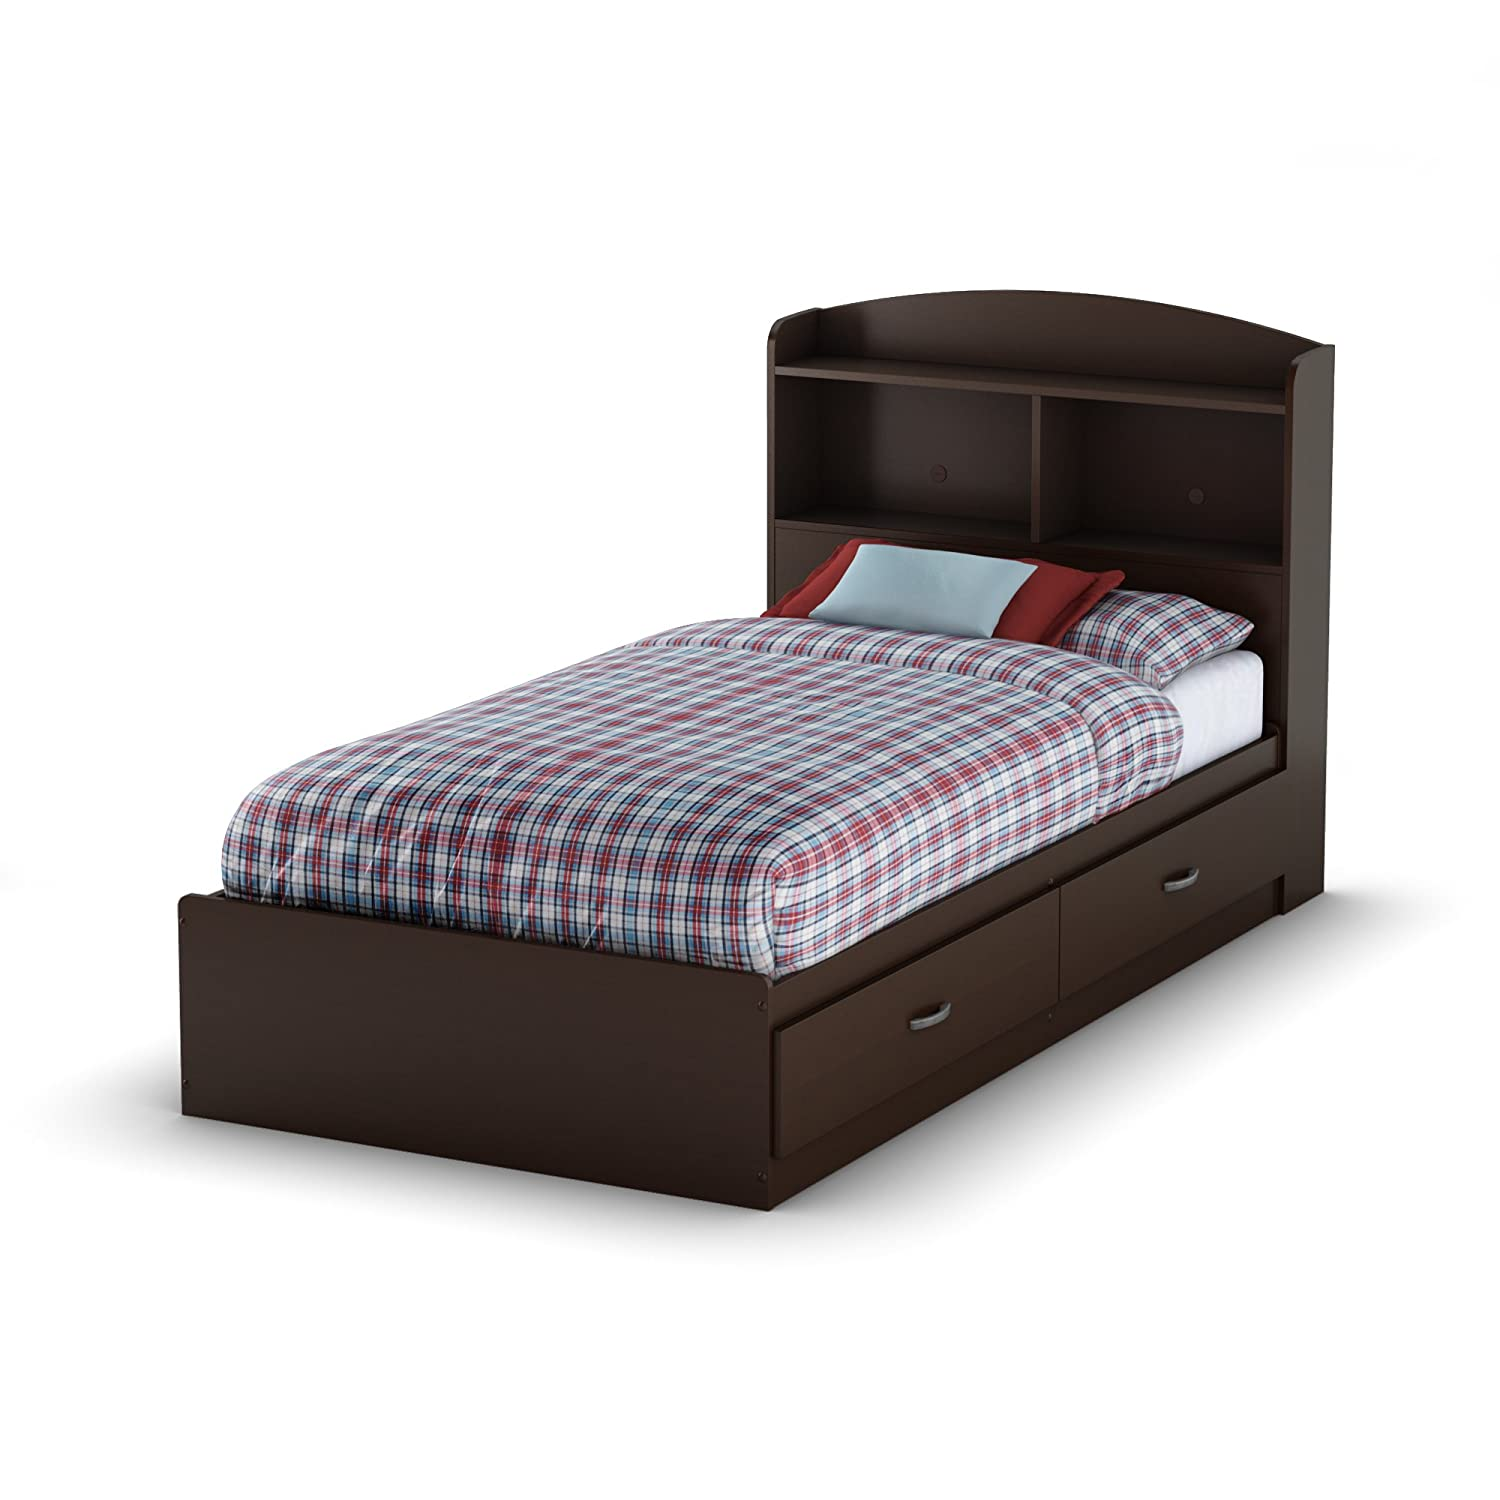 Amazon South Shore Logik Collection Twin Mates Bed Chocolate